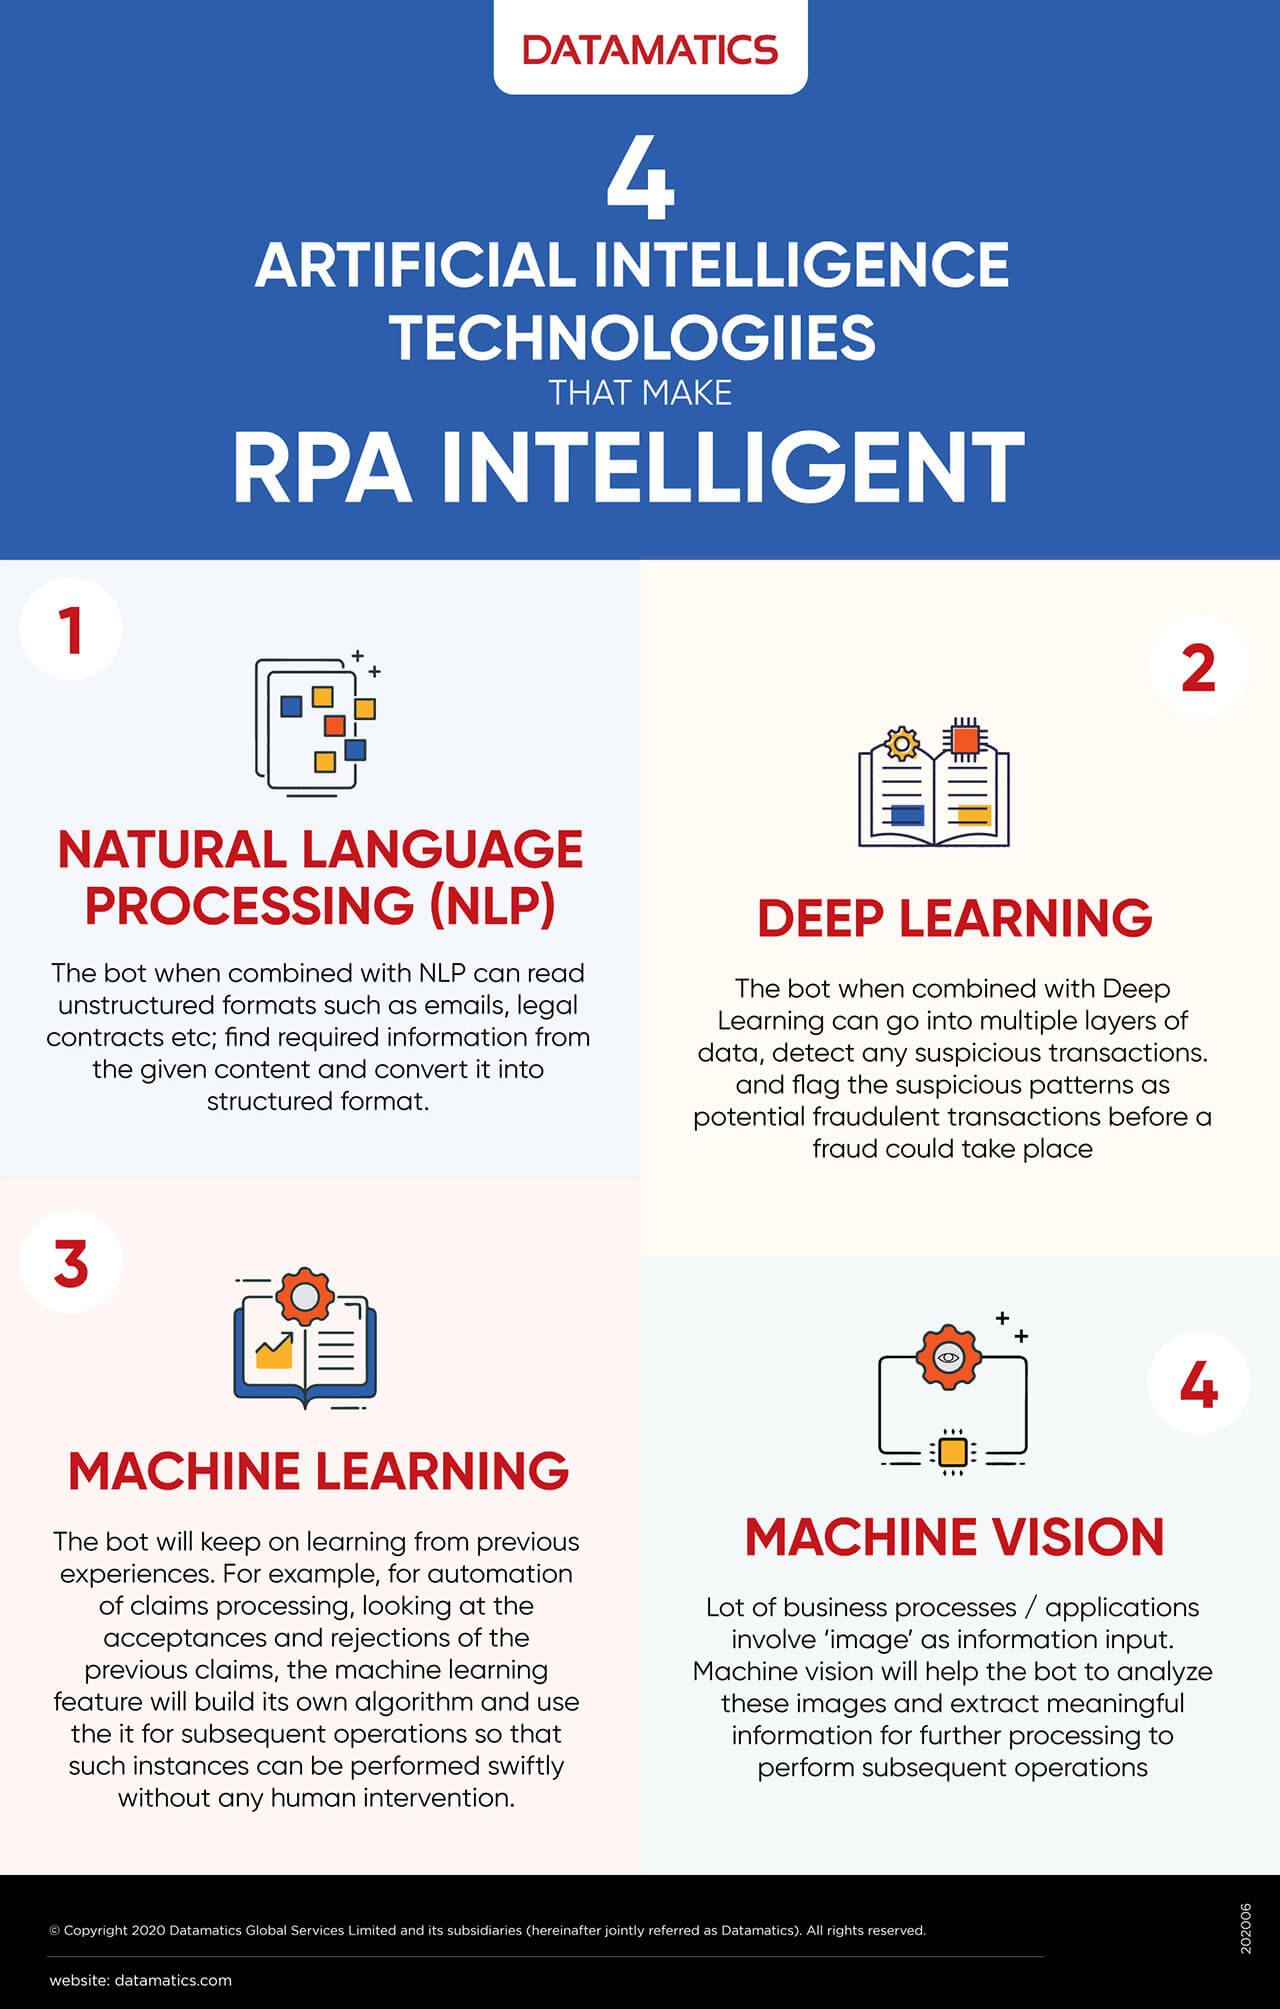 Infographic on 4 Artificial Intelligence Technologies that make RPA Intelligent